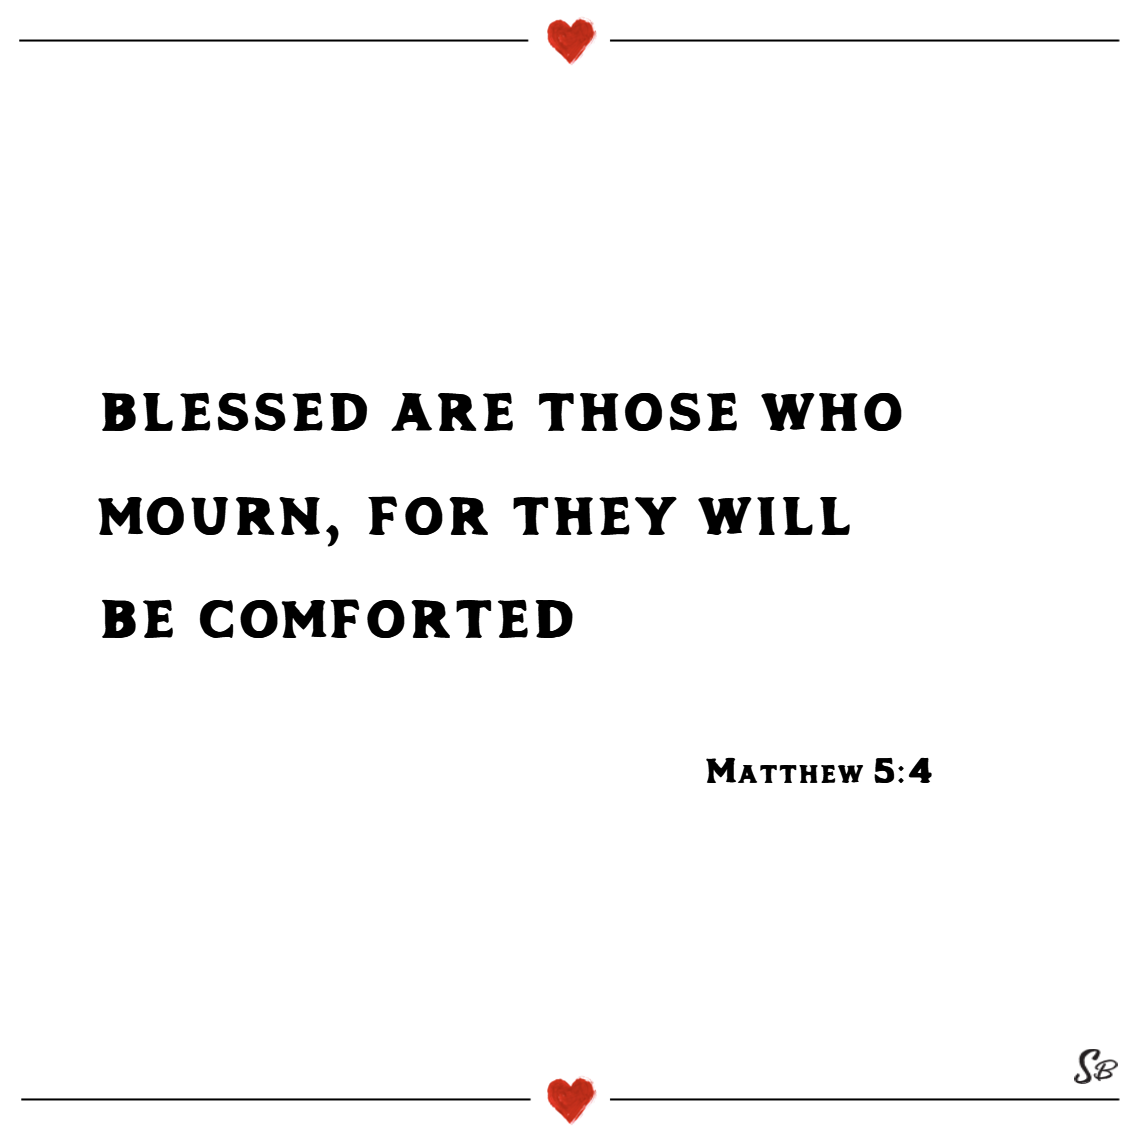 Blessed are those who mourn, for they will be comforted. – matthew 5 4